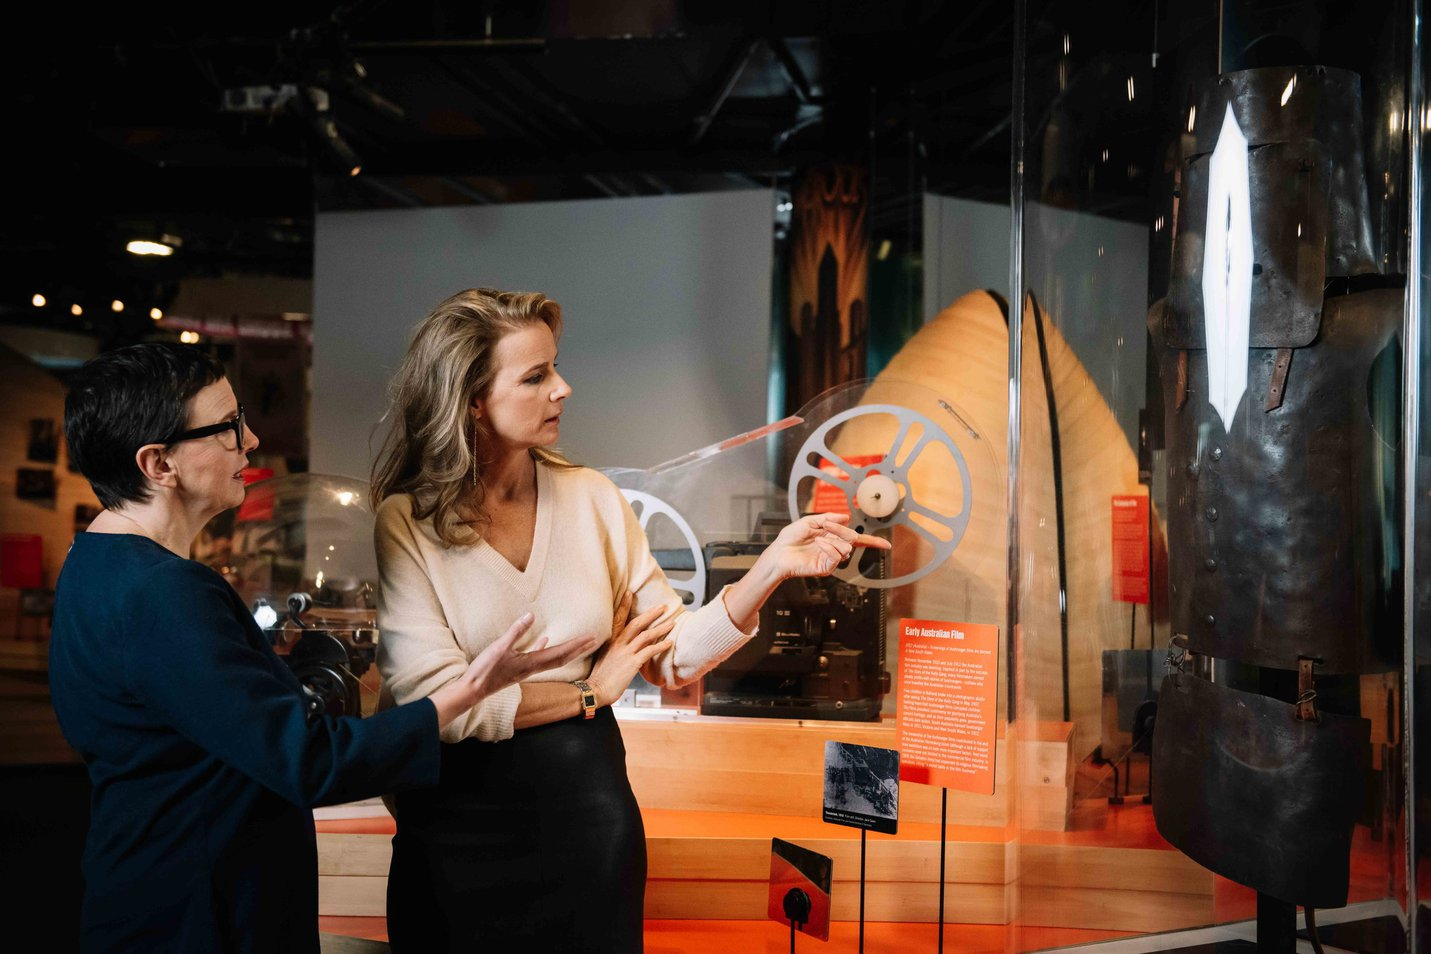 ACMI Director & CEO Katrina Sedgwick with Board Member, Director and Actor Rachel Griffiths look at the costume worn by Orlando Bloom in the 2003 film Ned Kelly. Image credit: Phoebe Powell .jpg